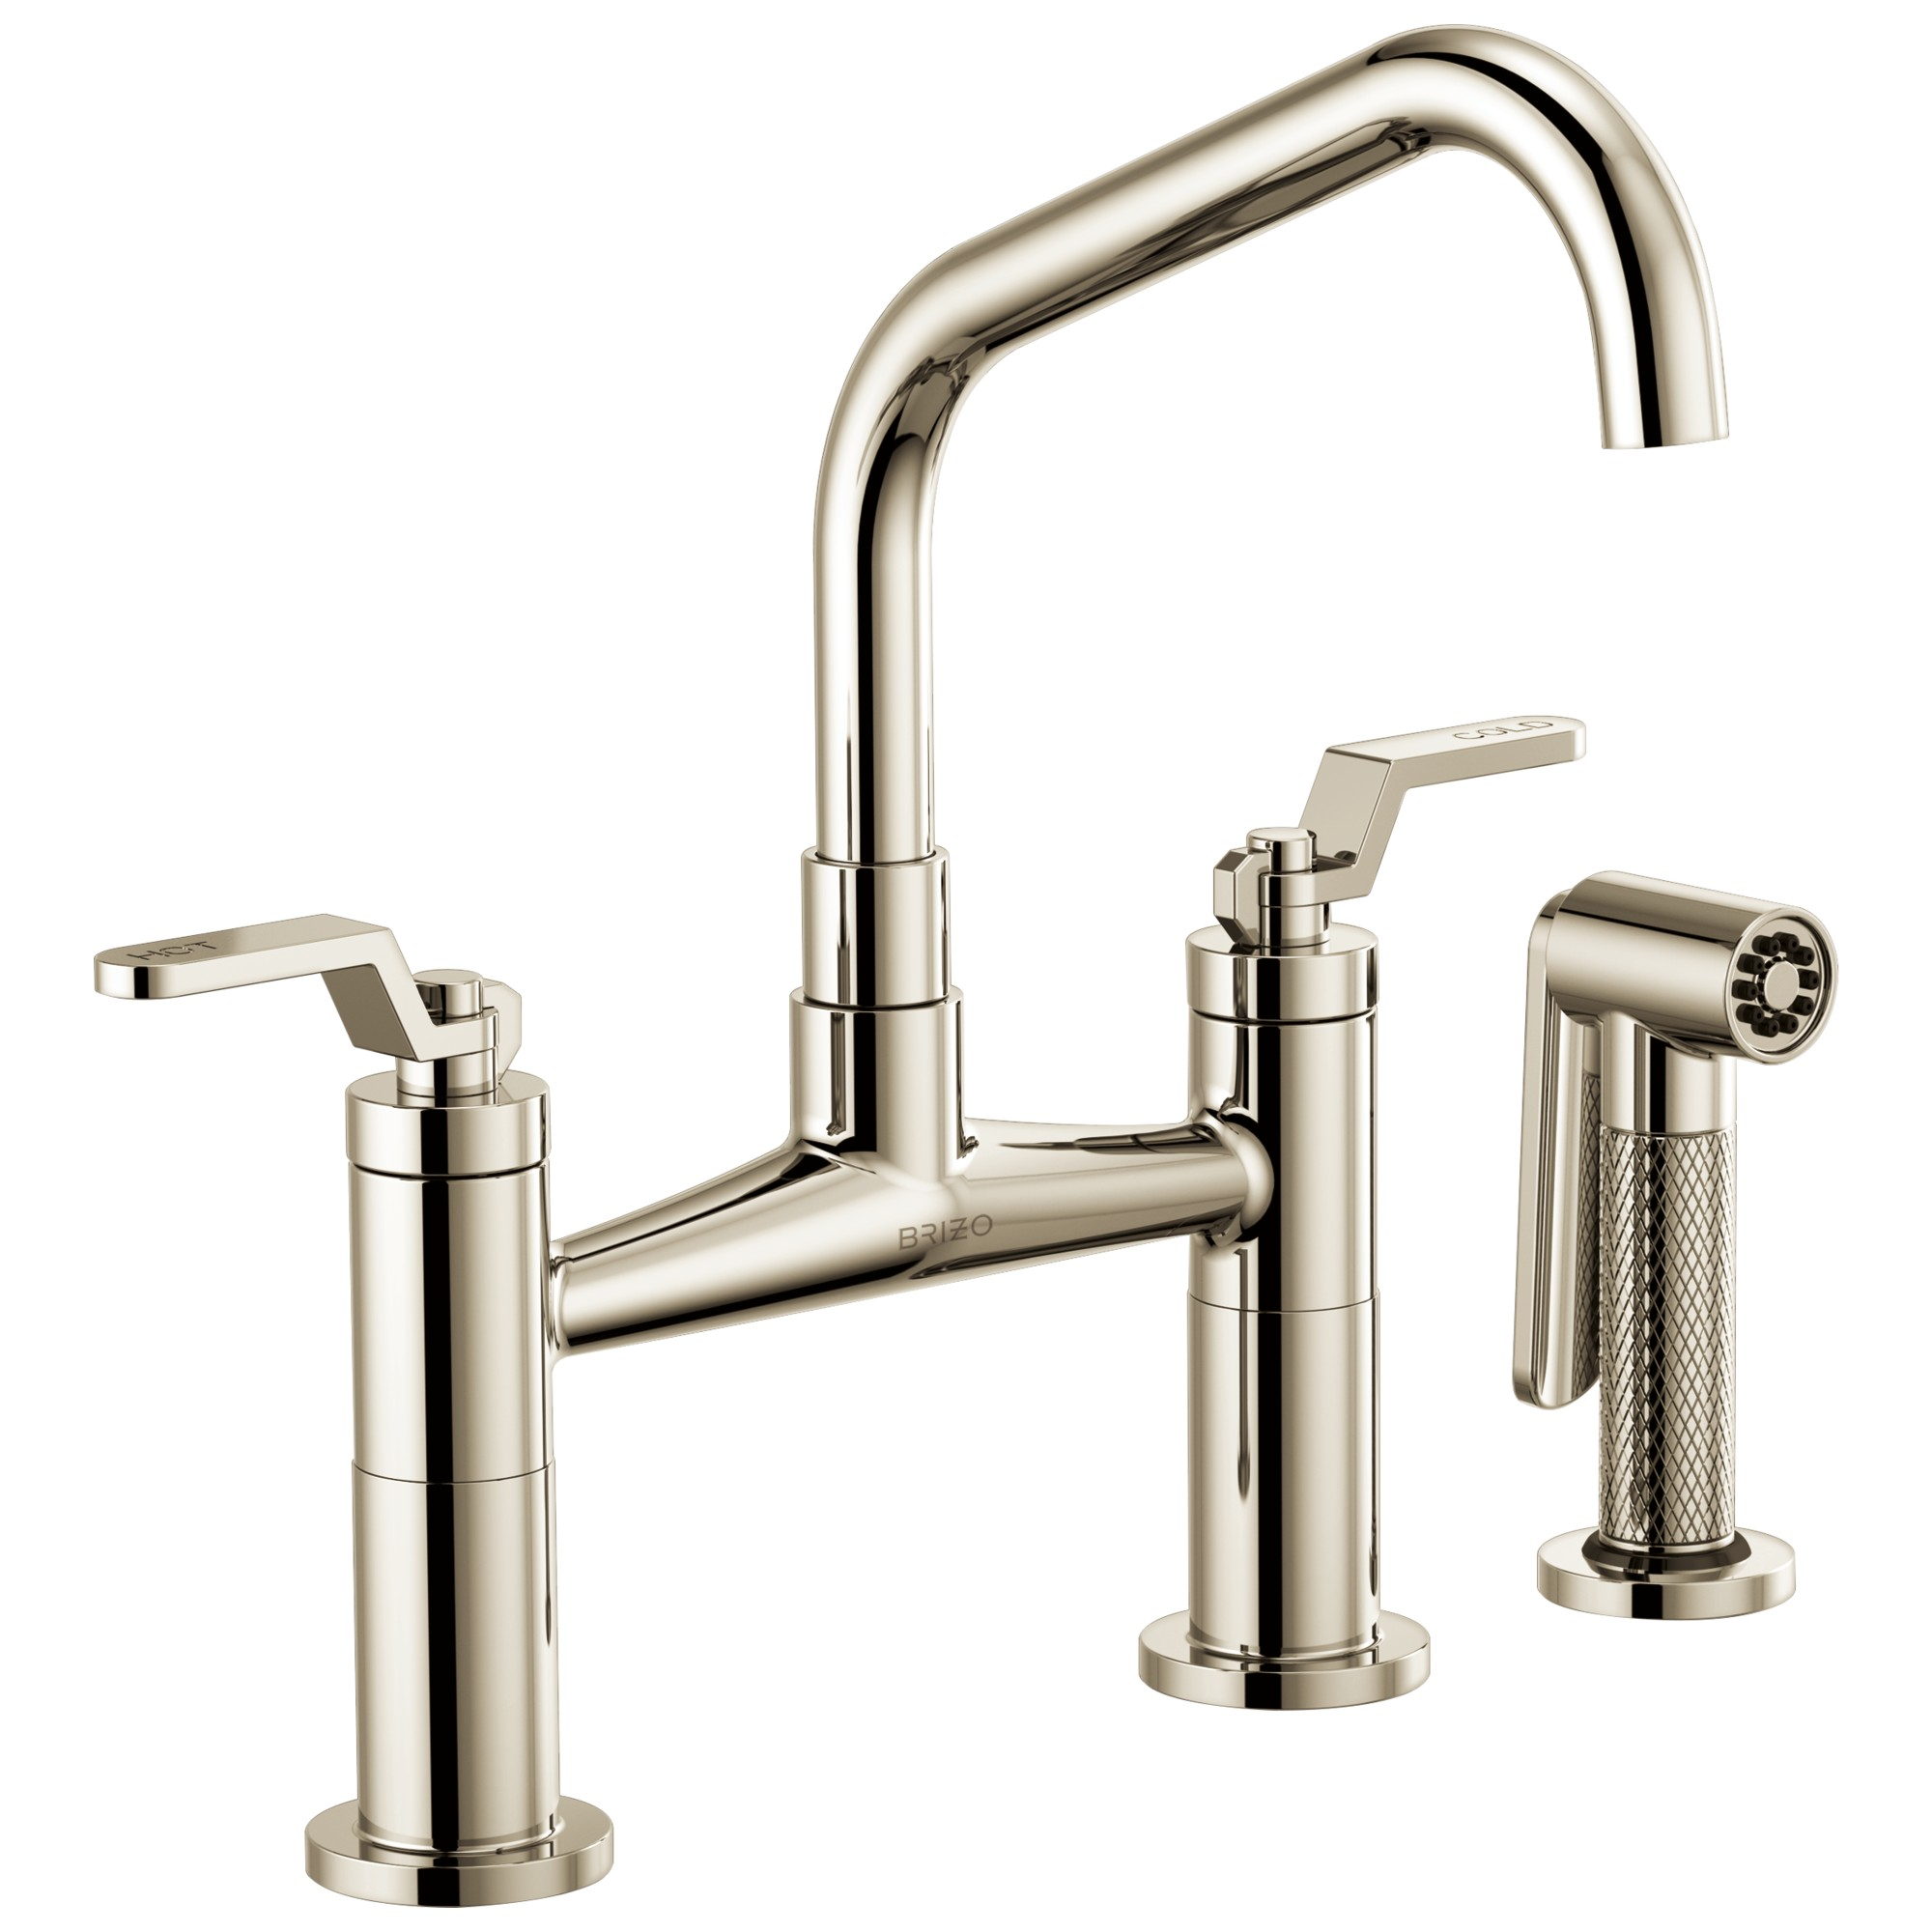 Brizo 62564LF-PN Litze Bridge Faucet with Angled Spout and Industrial Handle - Polished Nickel